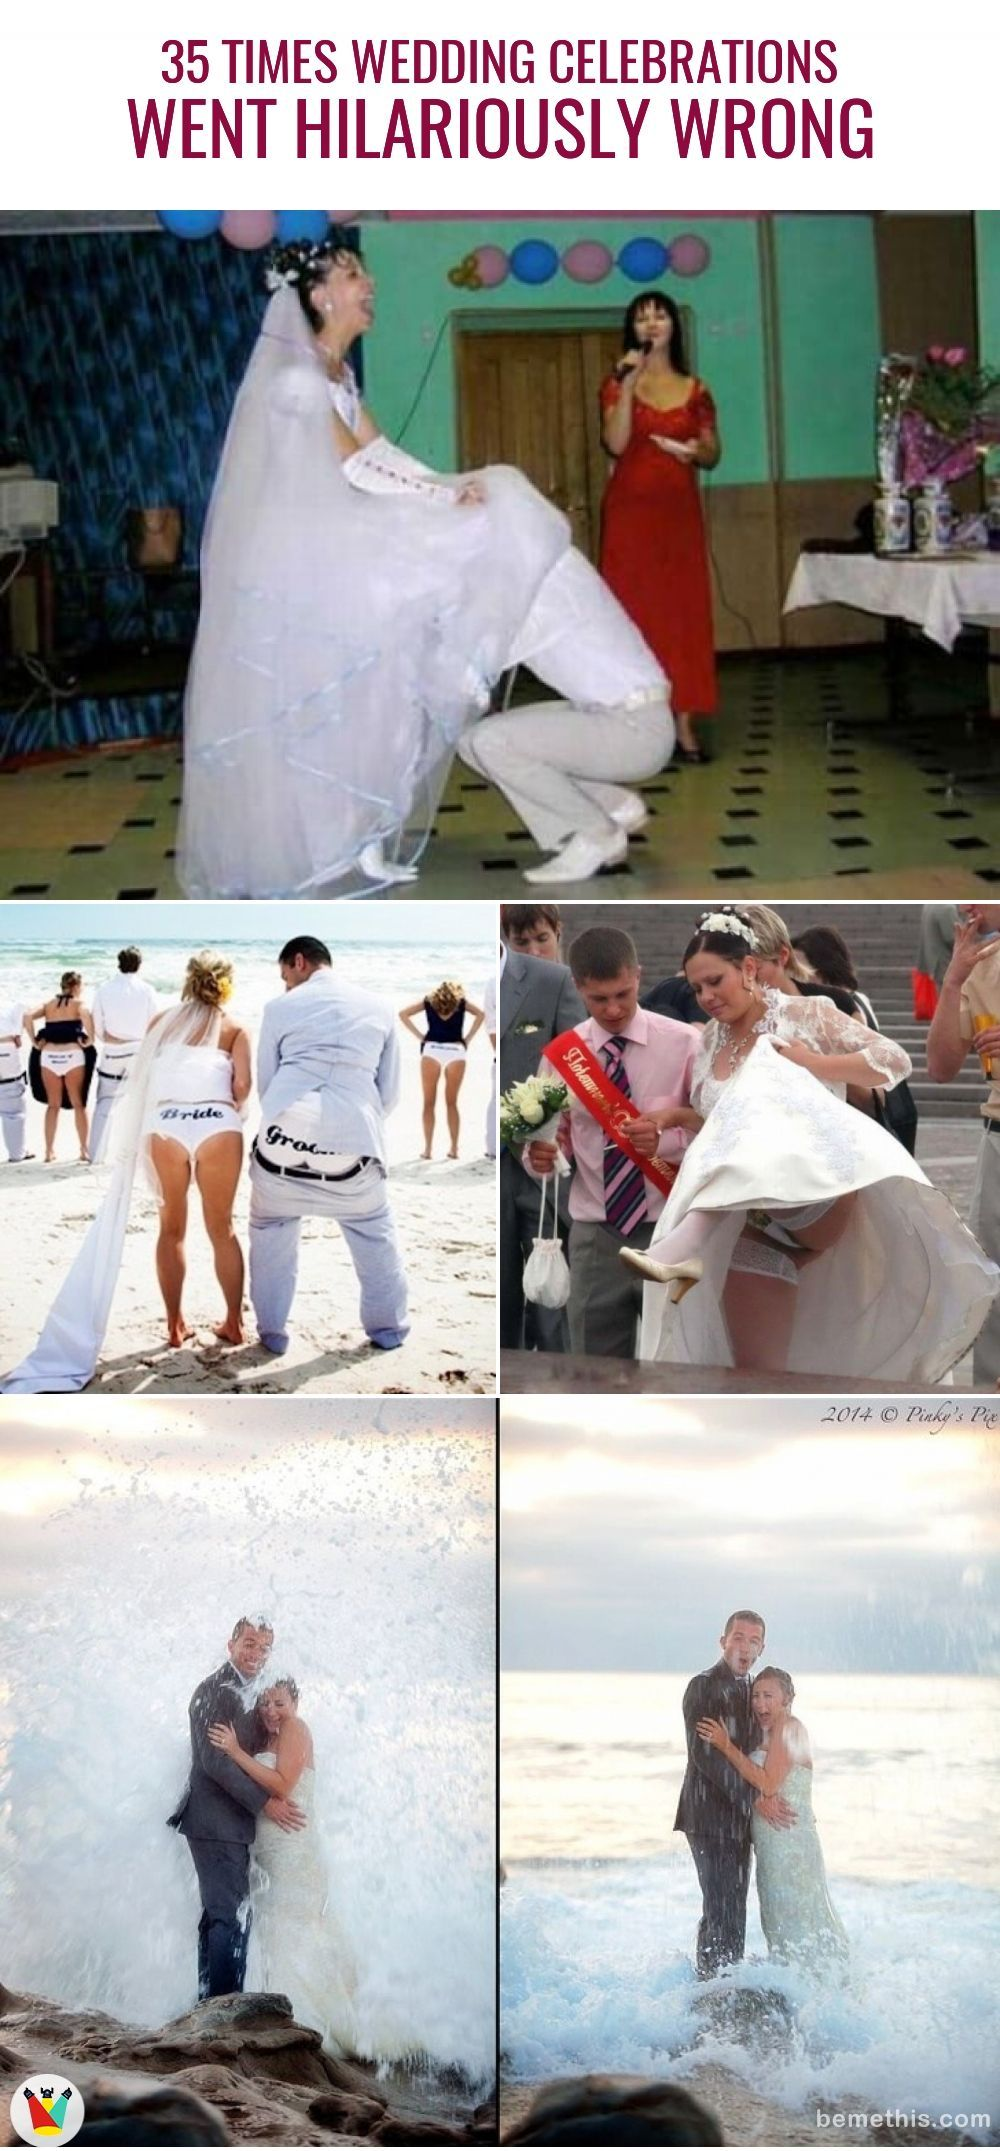 Listed Up In This Post Are 30 Photos When Wedding Celebrations Went Hilarious Wrong Weddings Clothing Fails Fu Celebrity Weddings Celebrities Wedding Fail